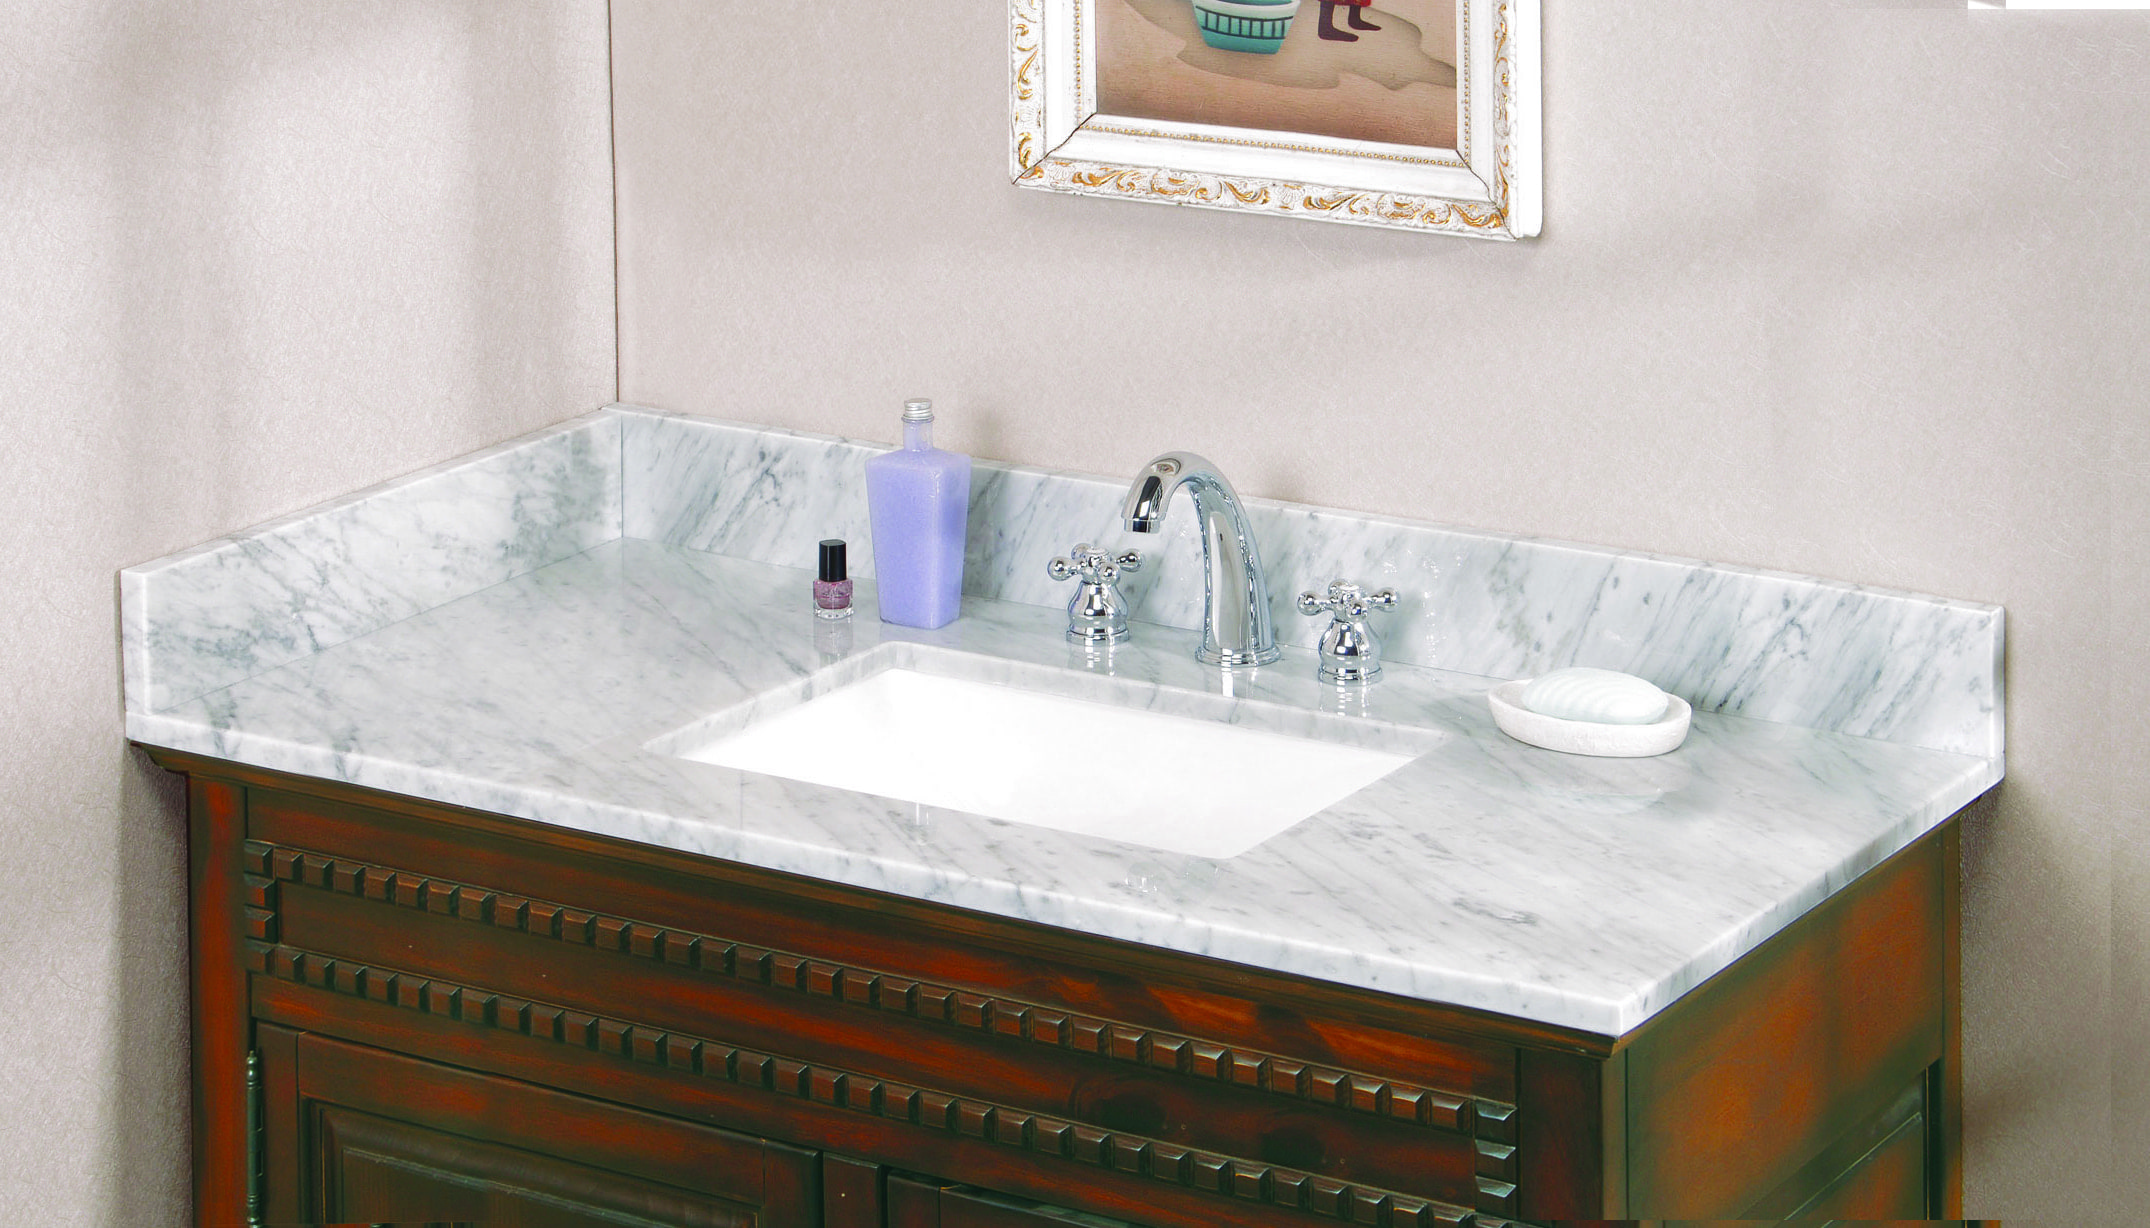 Pedra marble vanity top with um trough bowl carrara marble 49x22x3 4 single bowl eased edge 3 holes at 8 offset